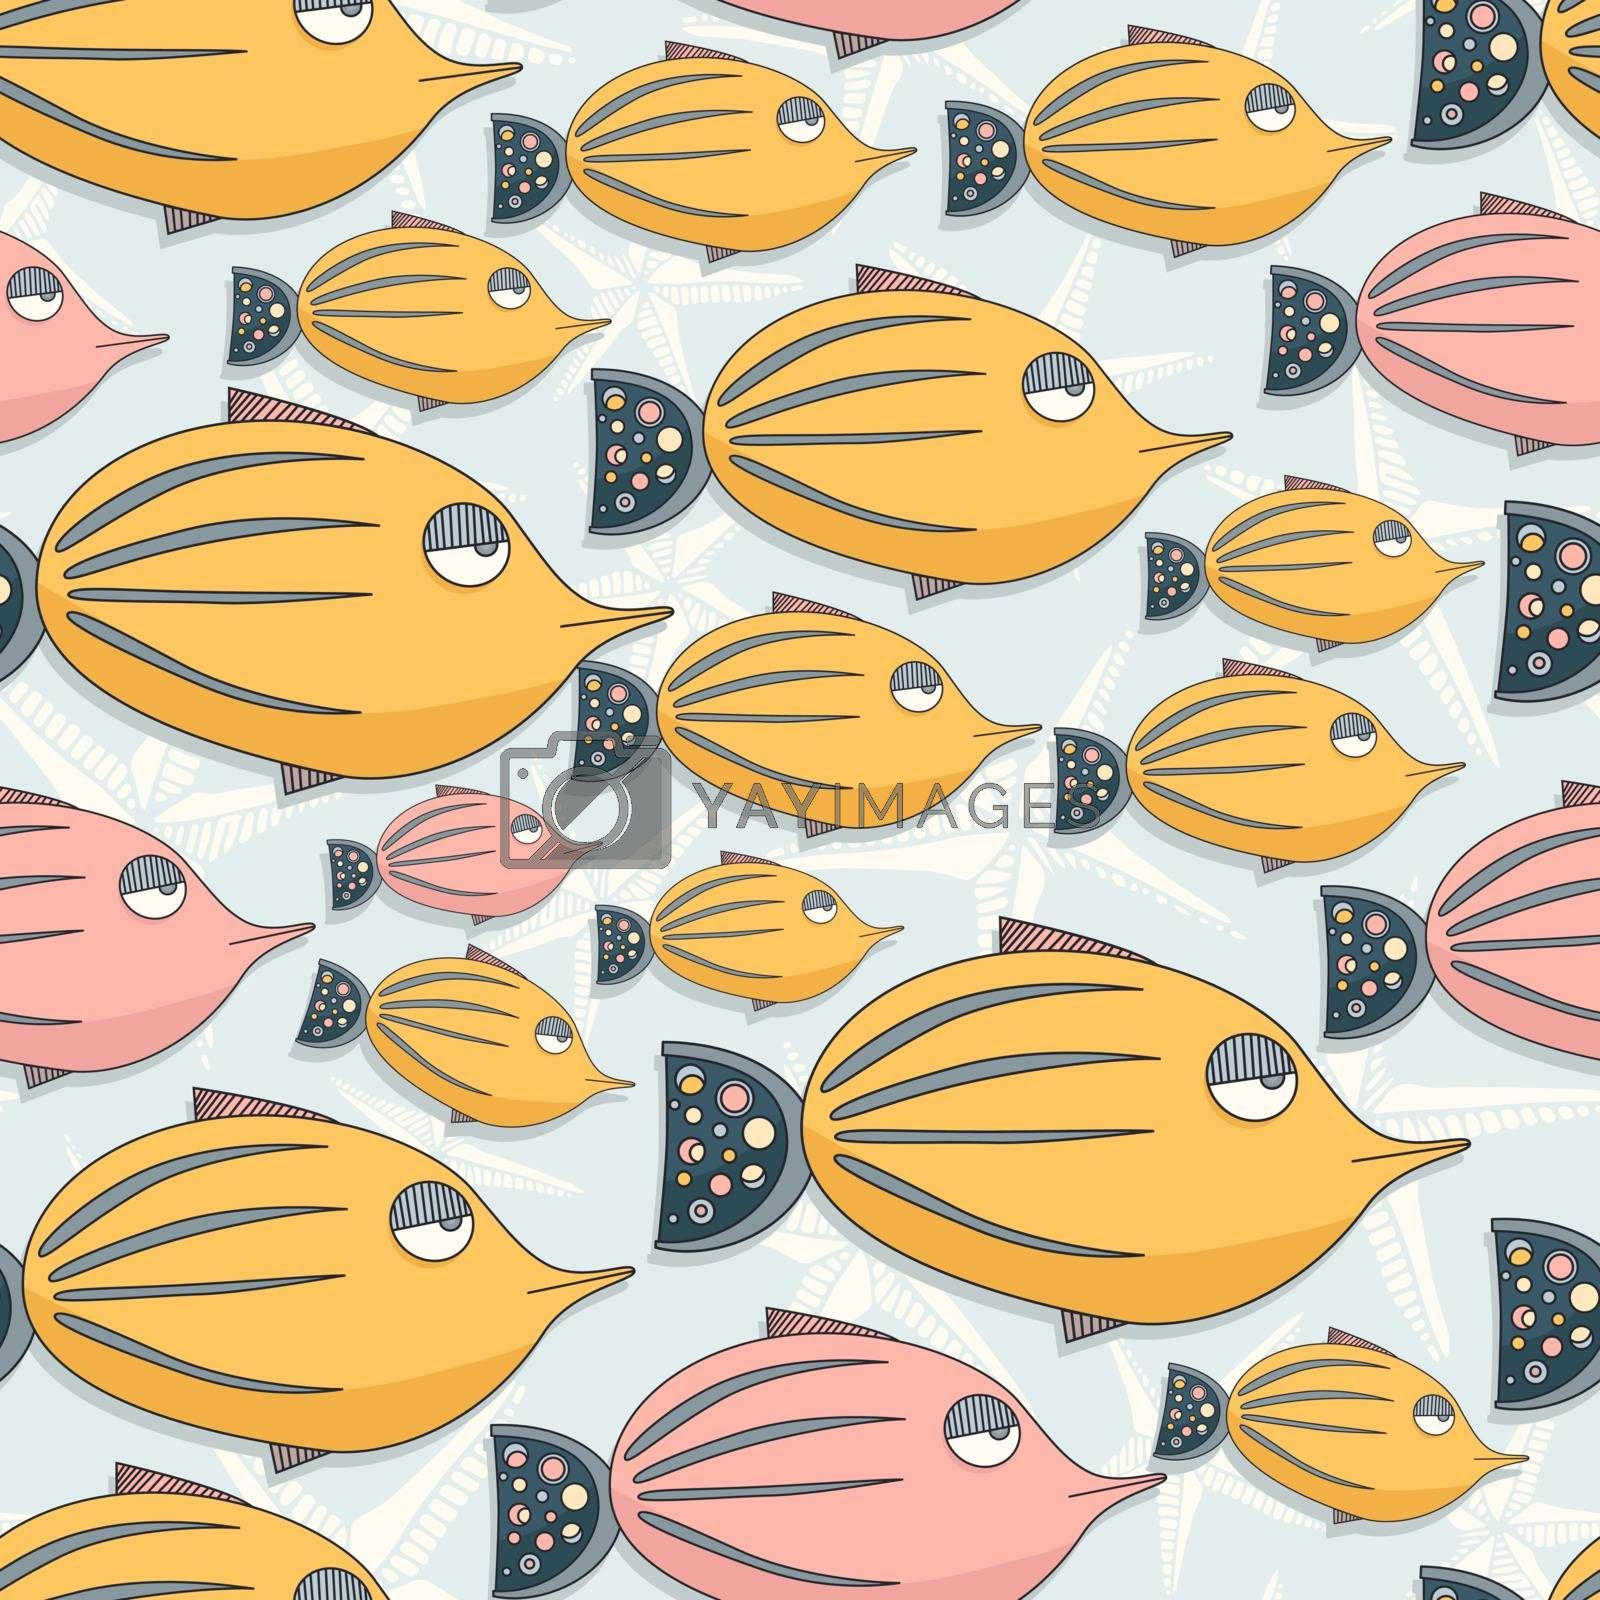 Fish seamless pattern by Favete